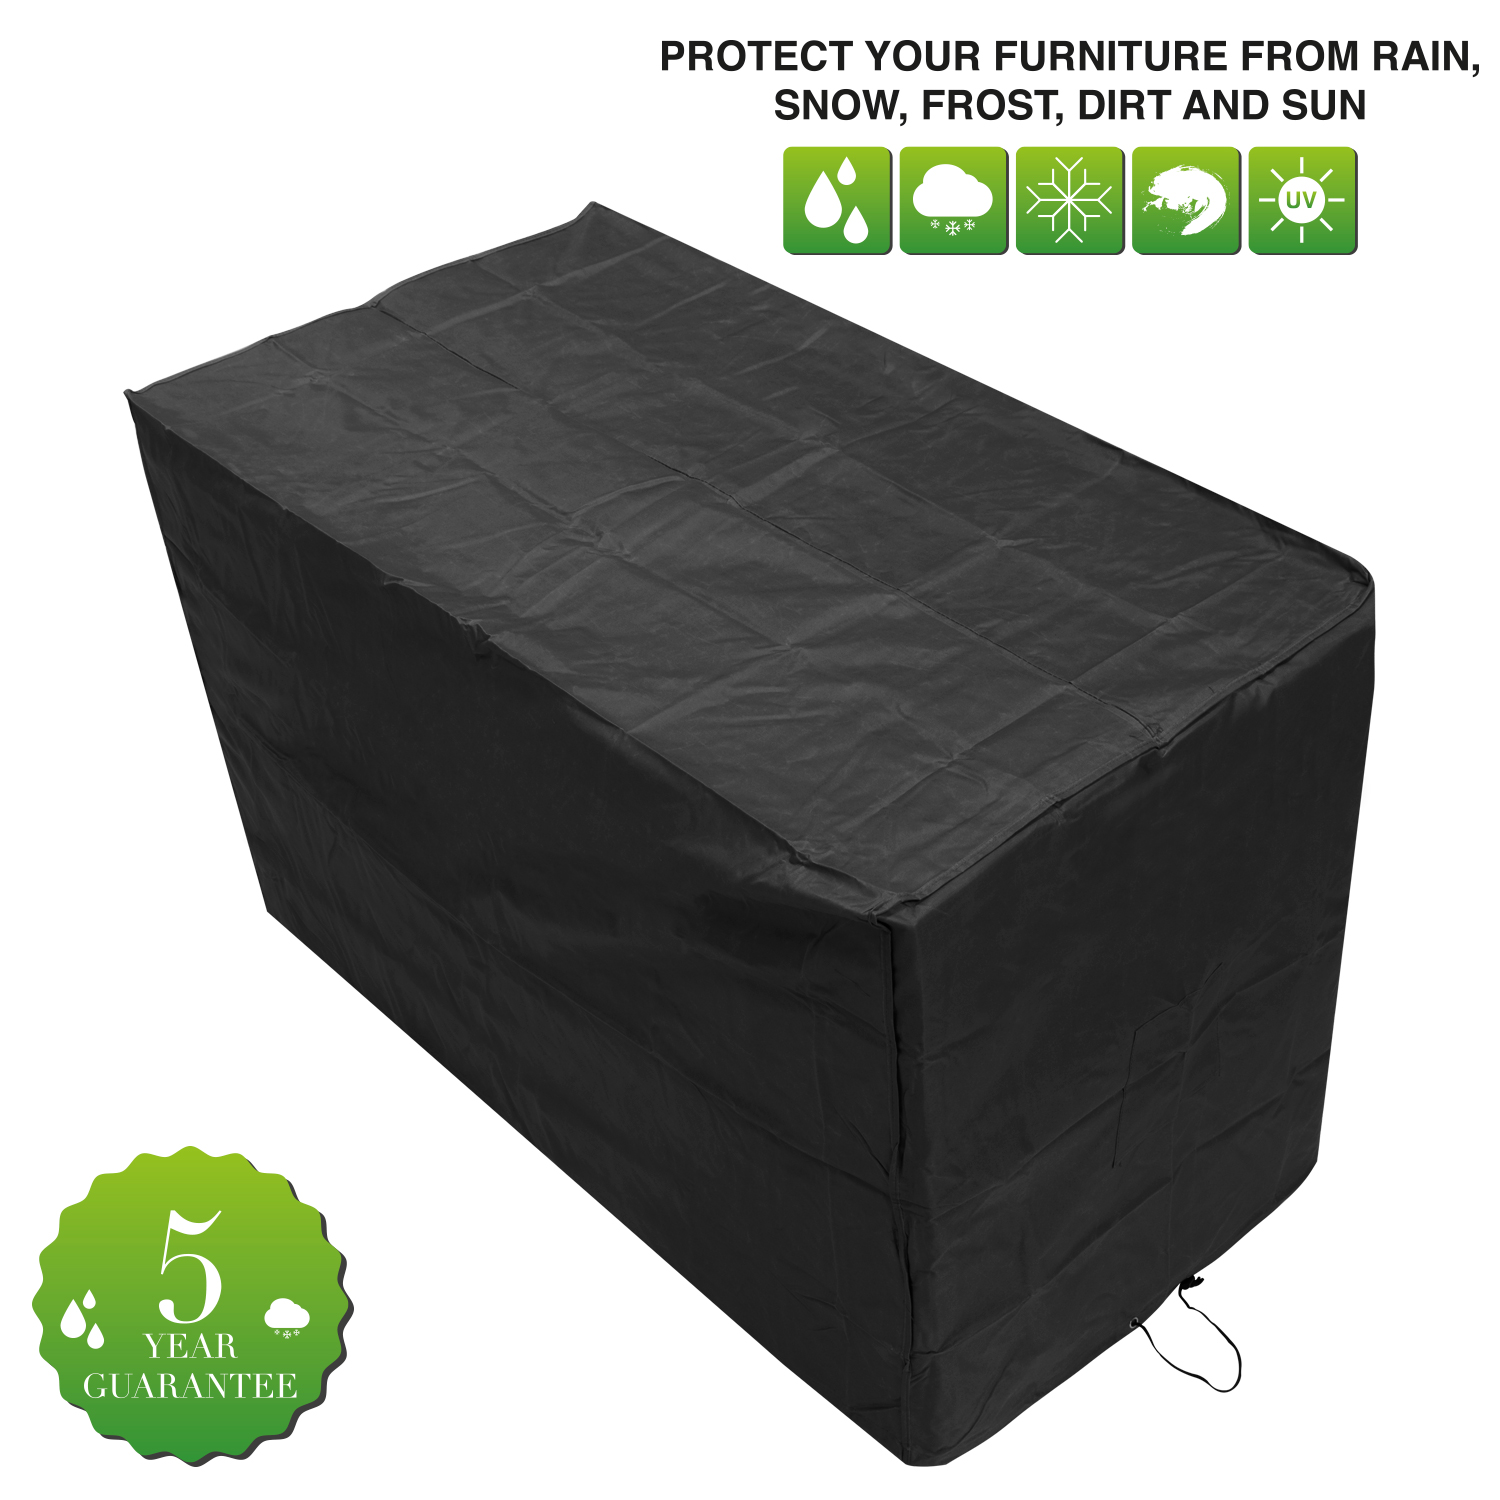 Oxbridge bistro patio set cover covers outdoor value for Oxbridge outdoor furniture covers